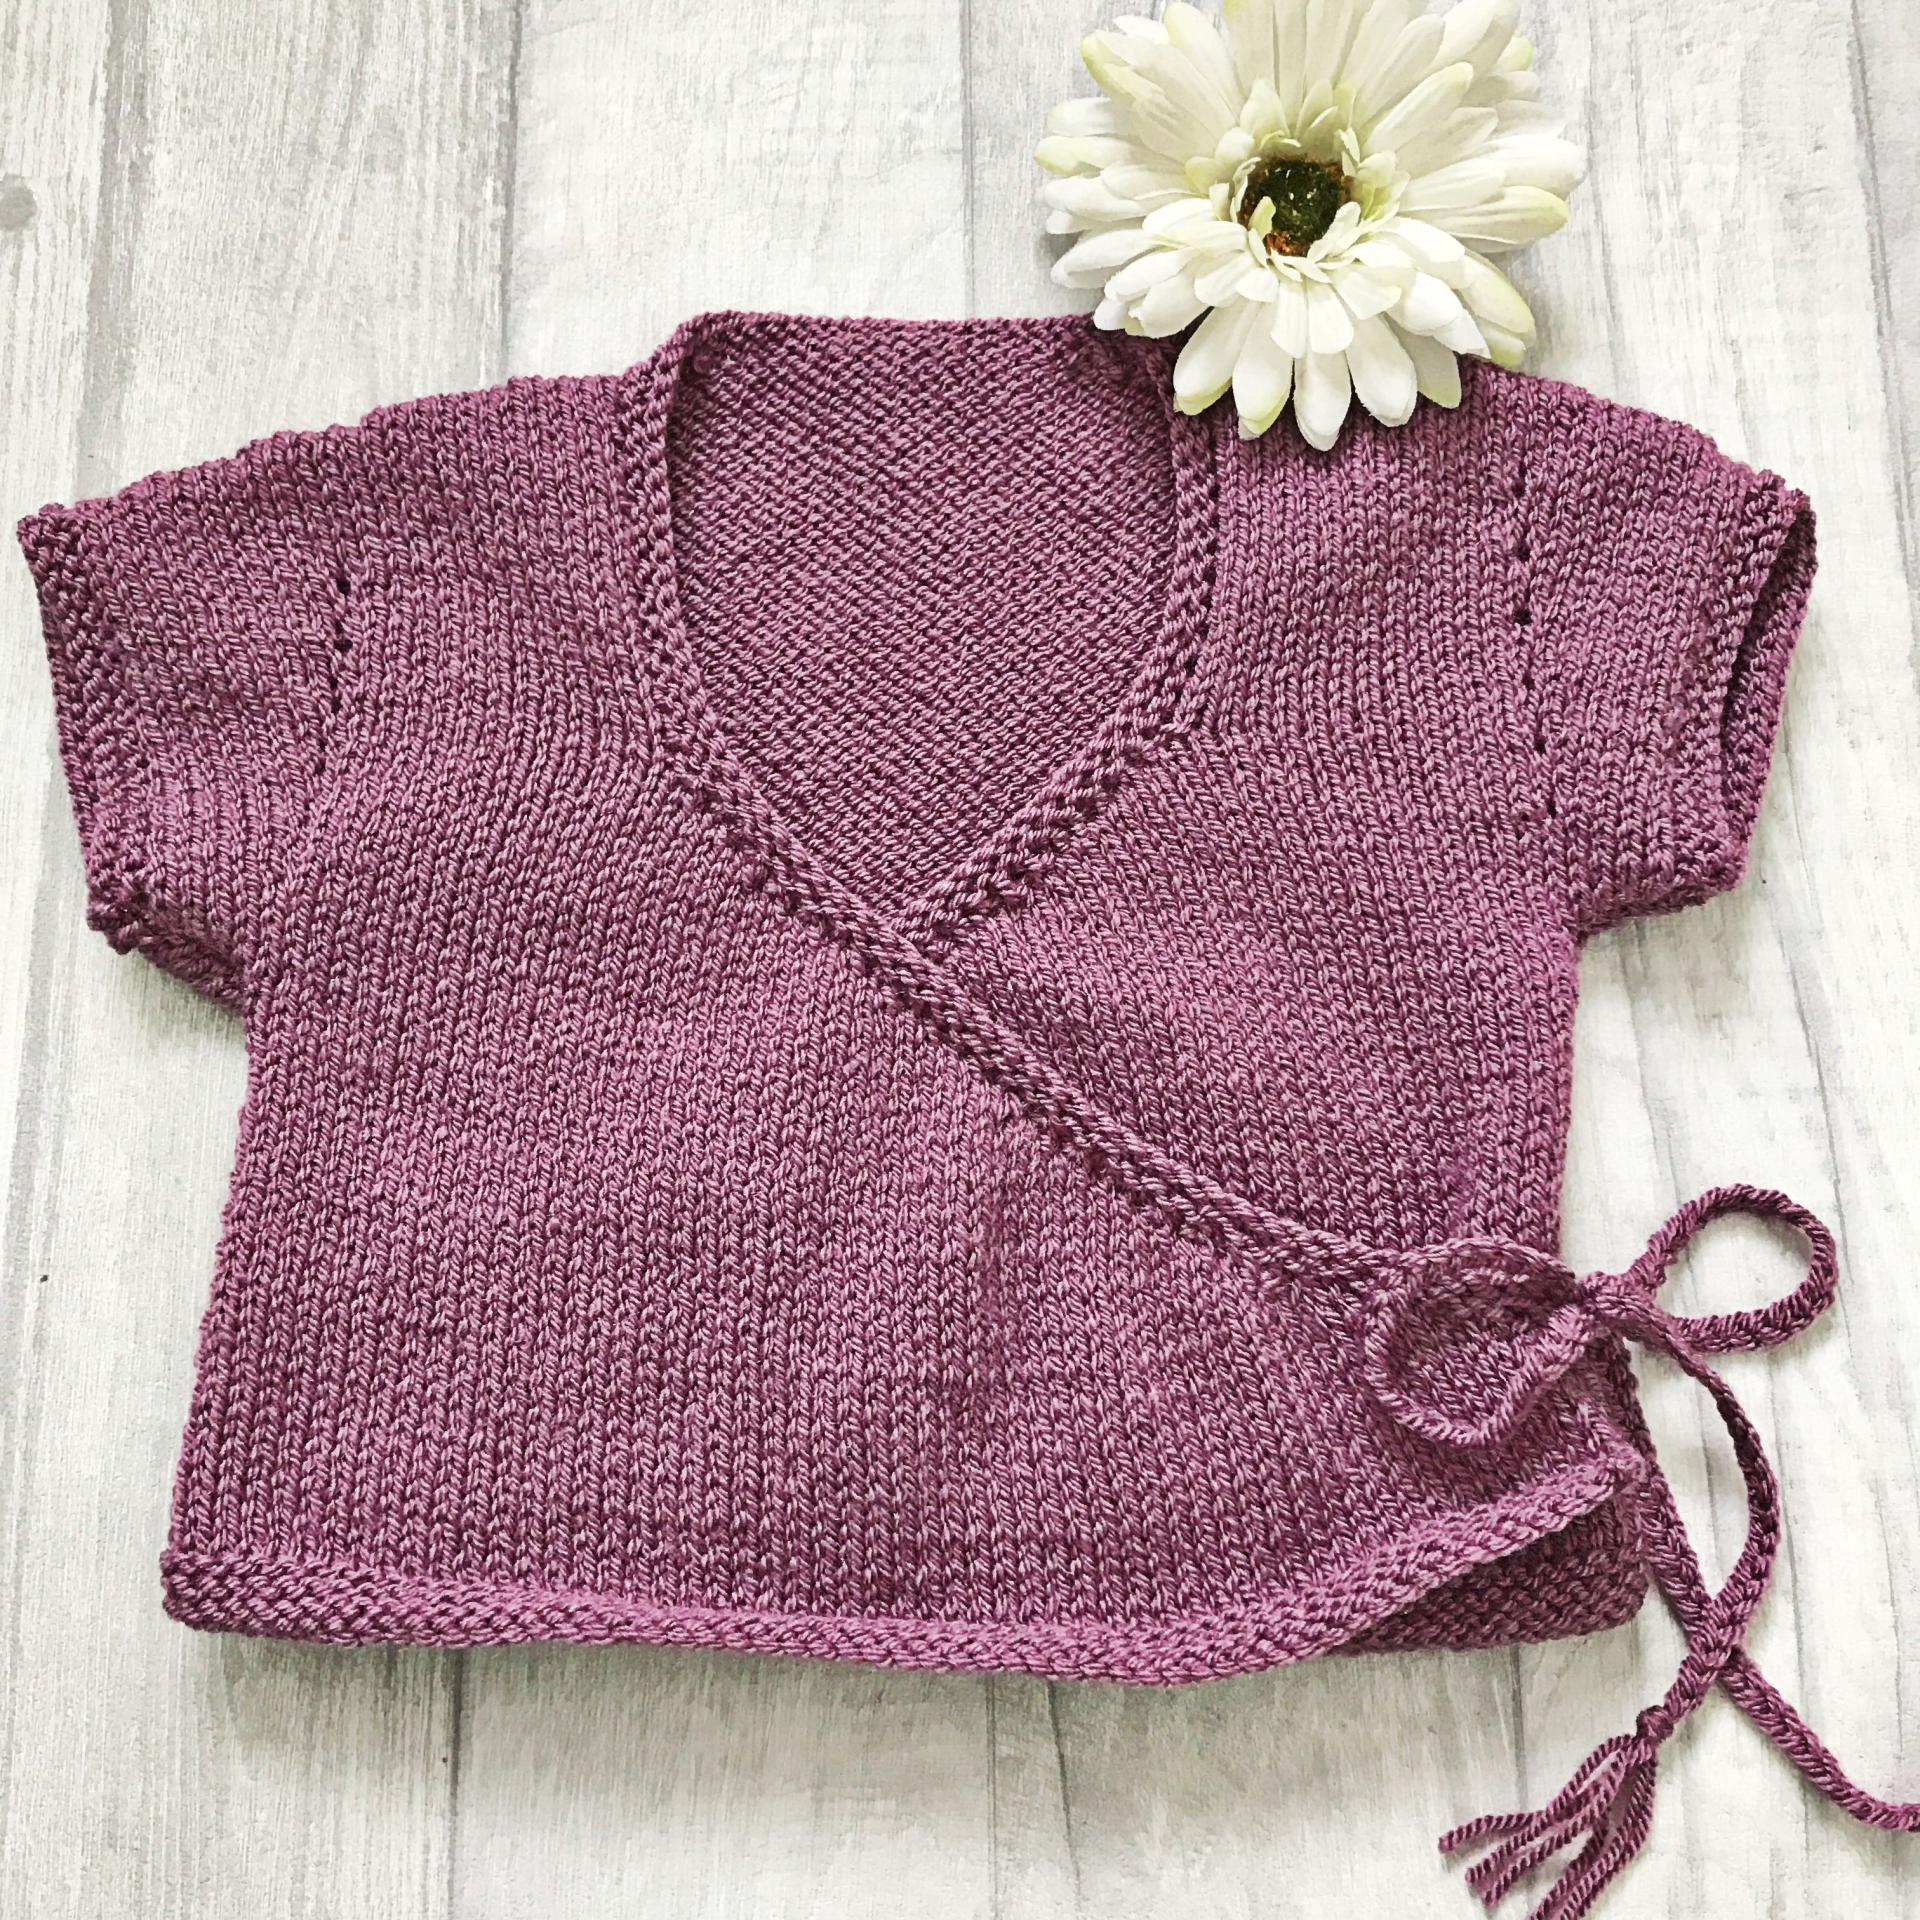 Ballet Cardigan Knitting Pattern Handmade Wrap Over Cardigan Hand Knitted With Button And Plaited Ties